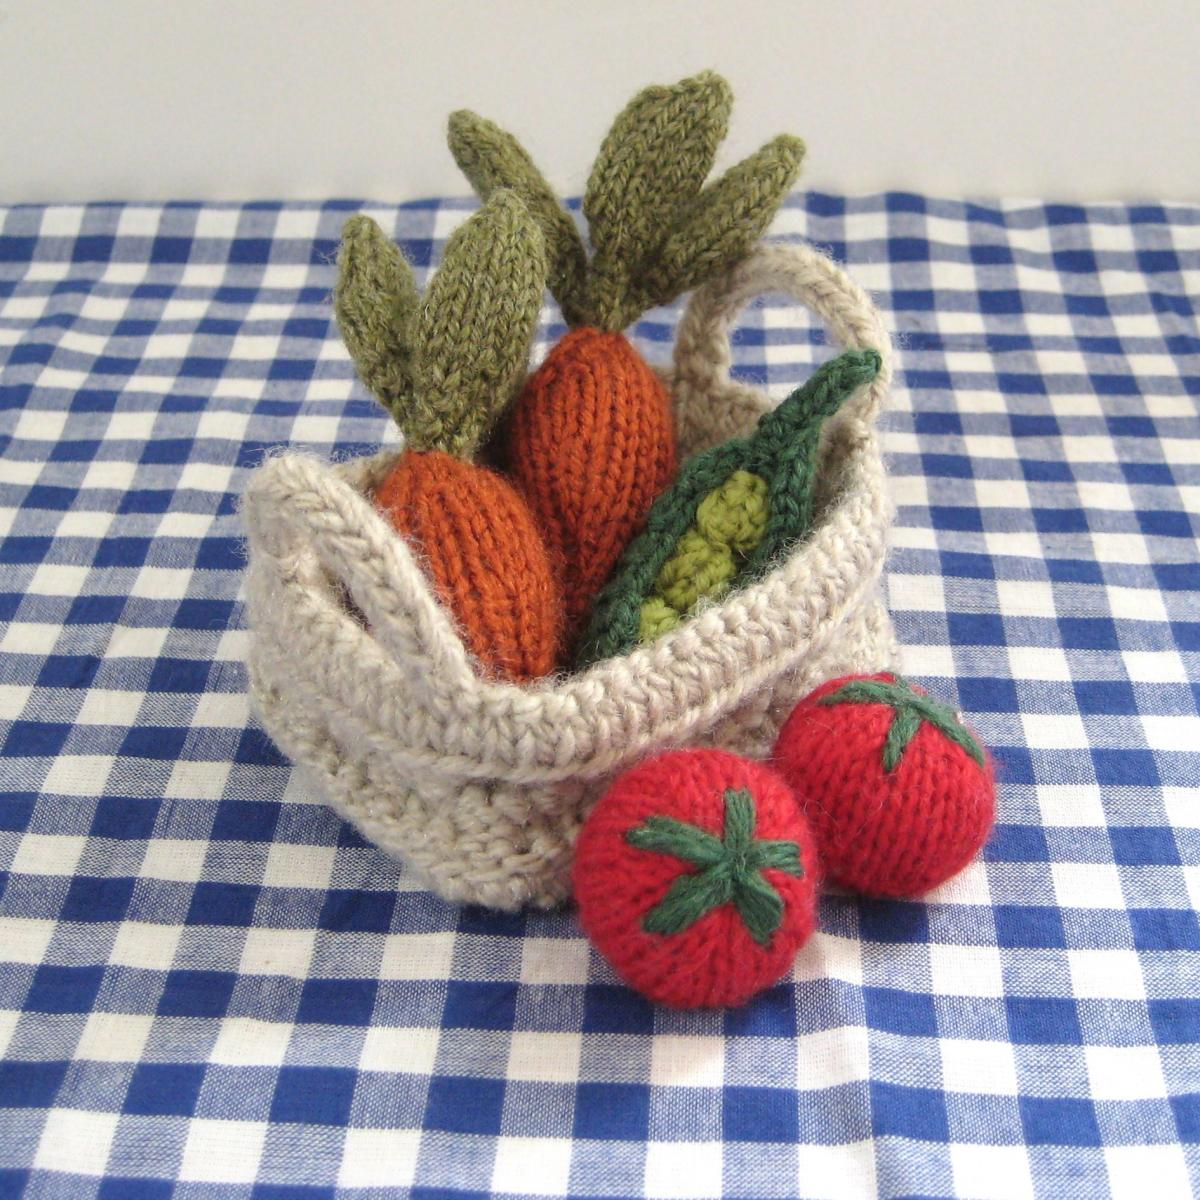 Knitting Patterns For Vegetables And Fruit : Fruit & Vegetables Toy Knitting Patterns on Luulla